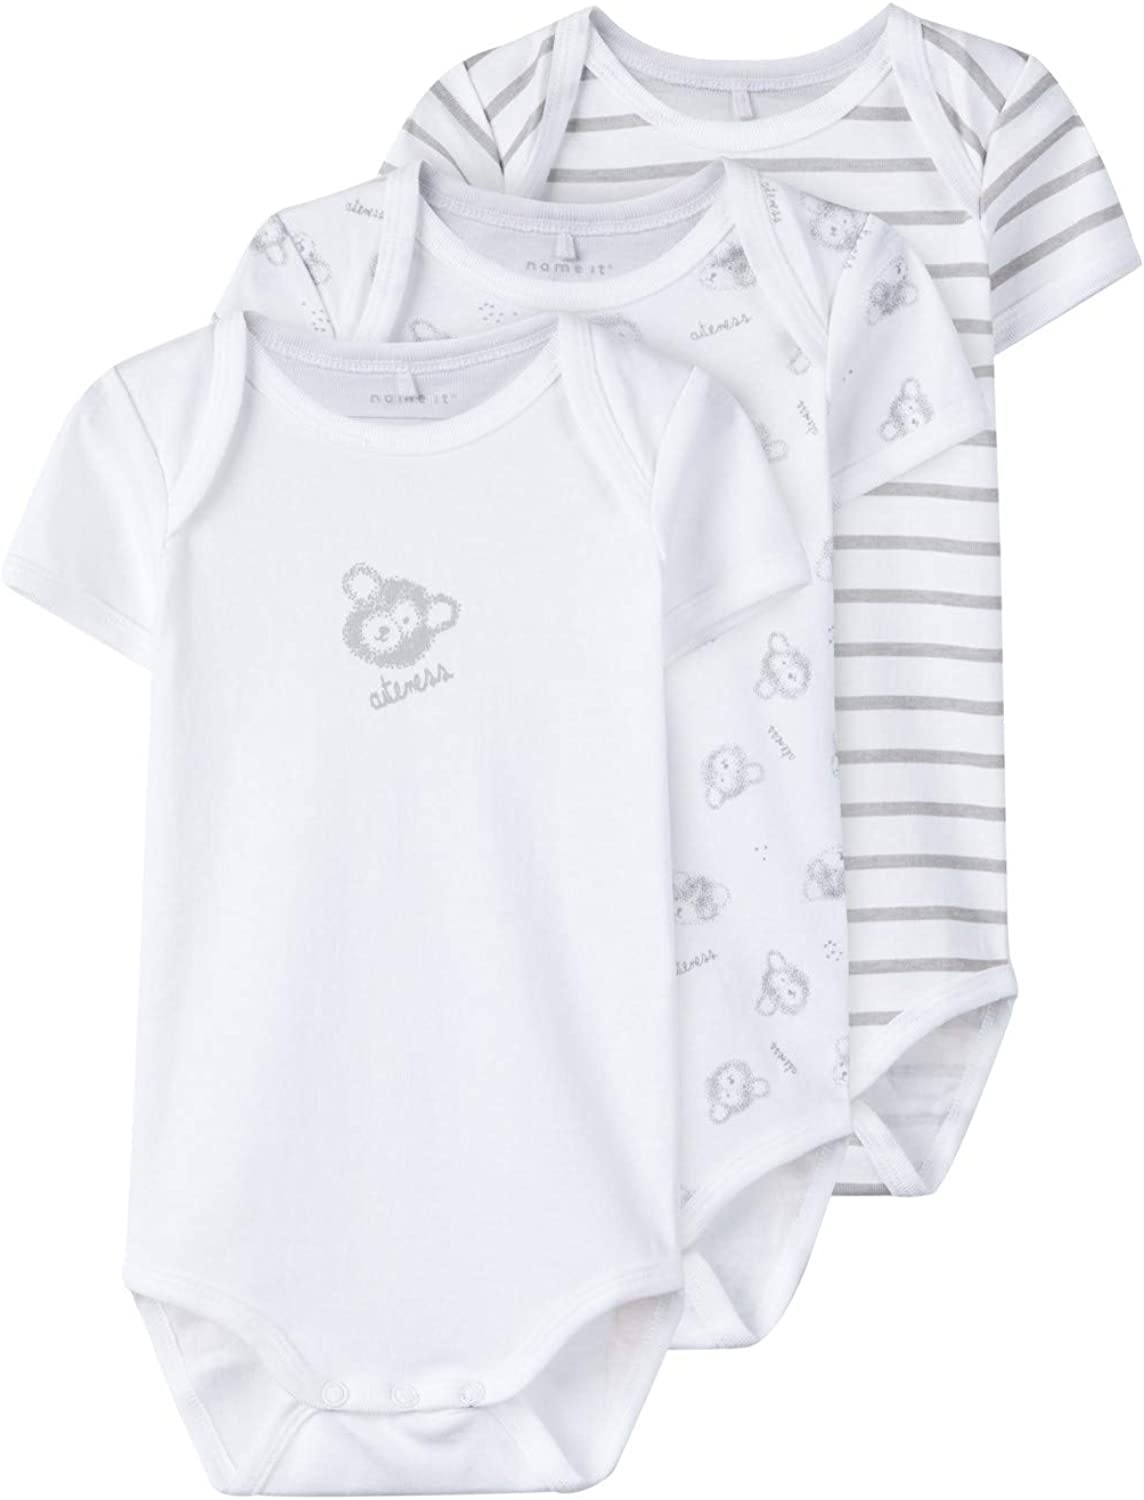 Name It NBNBODY Baby Bodysuit Short-Sleeved Cotton Pack of 3